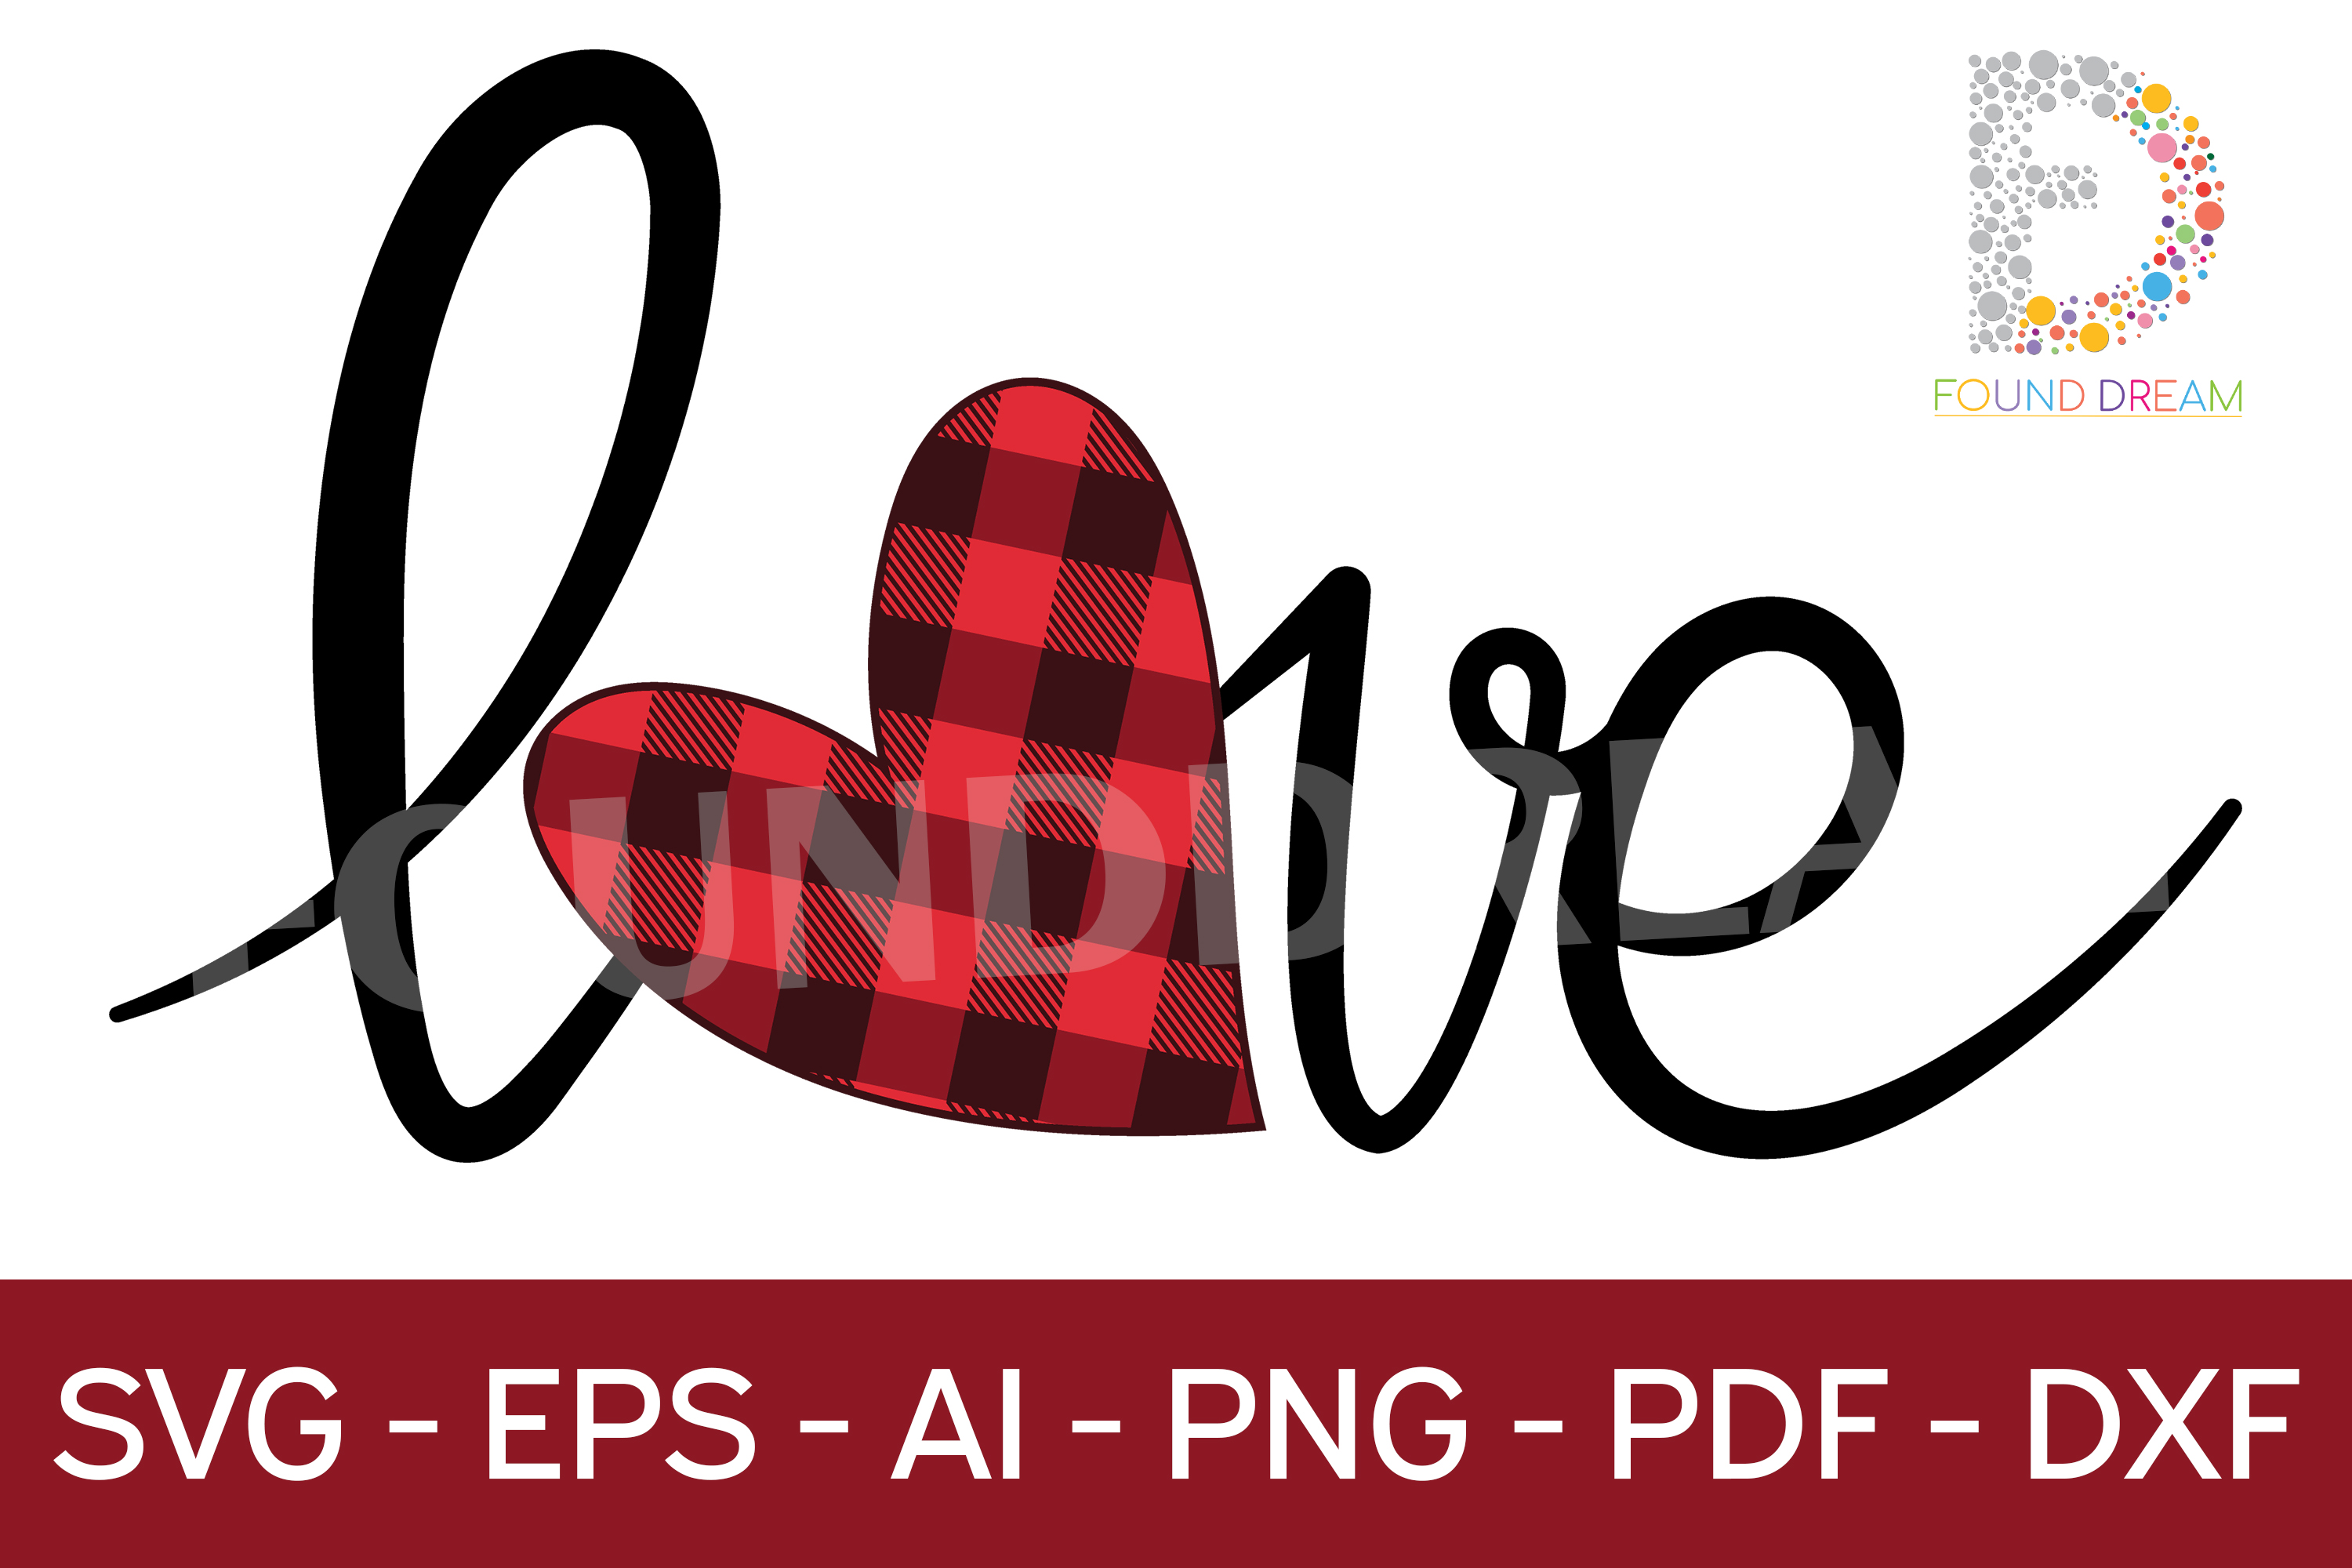 Download Free Love Graphic By Foundream Creative Fabrica for Cricut Explore, Silhouette and other cutting machines.